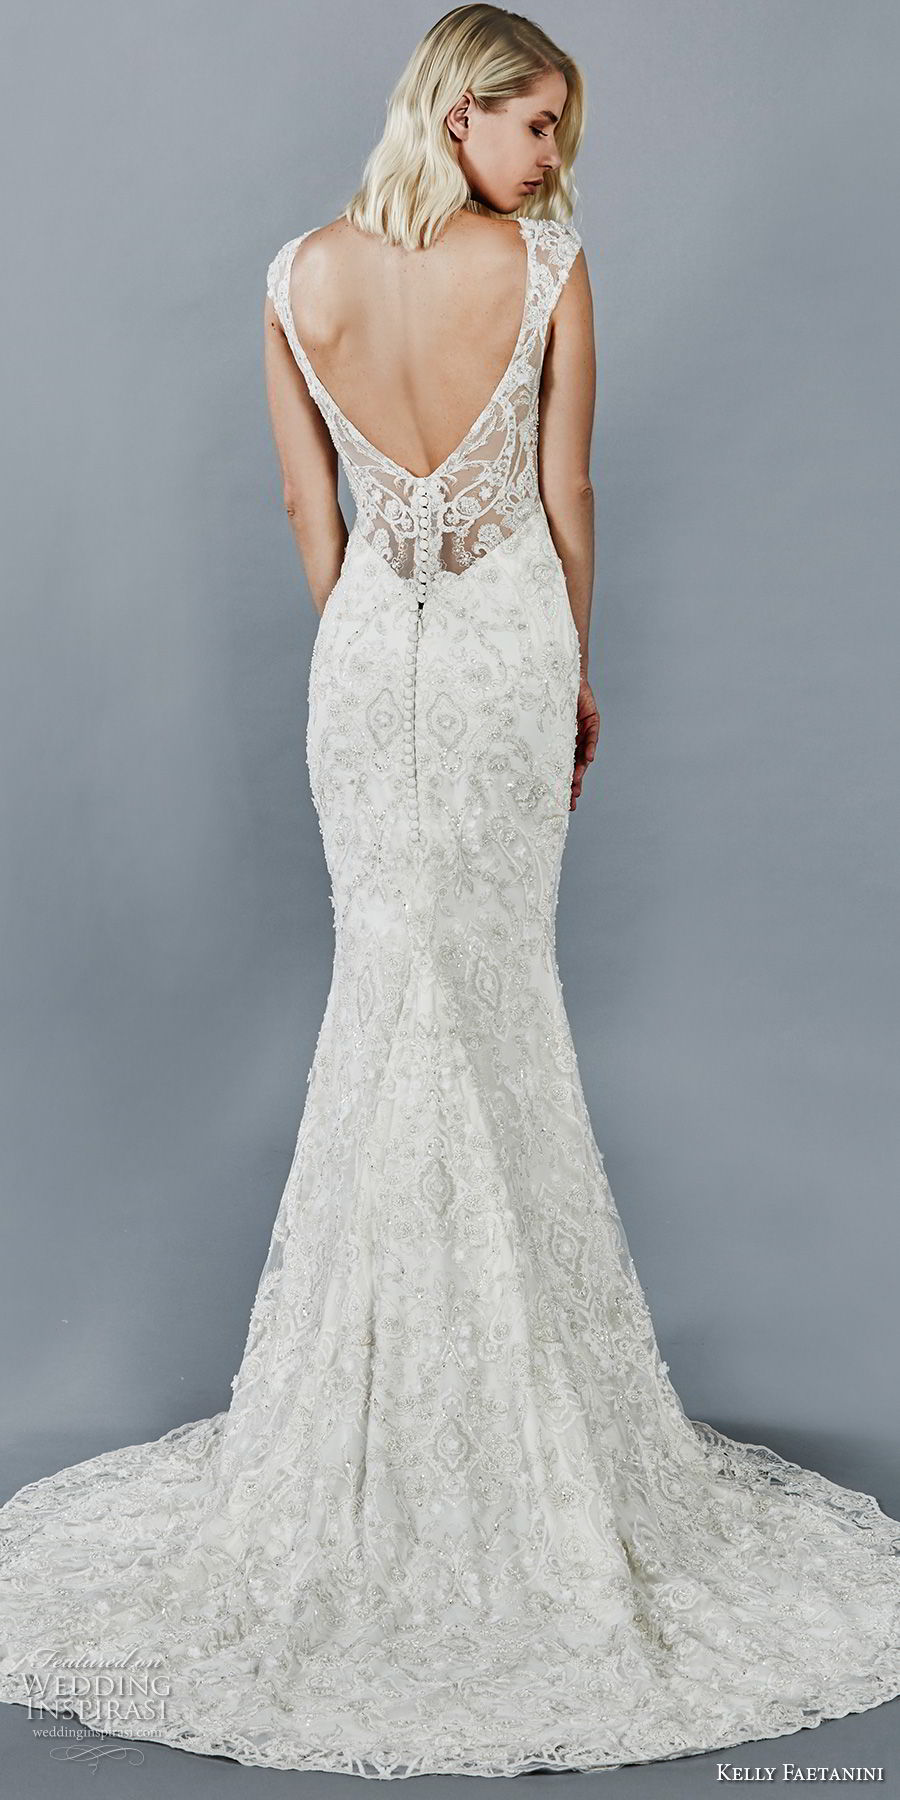 kelly faetanini fall 2018 bridal cap sleeves sweetheart neckline full beaded embellishment elegant fit and flare sheath wedding dress open v back sweep train (10) bv